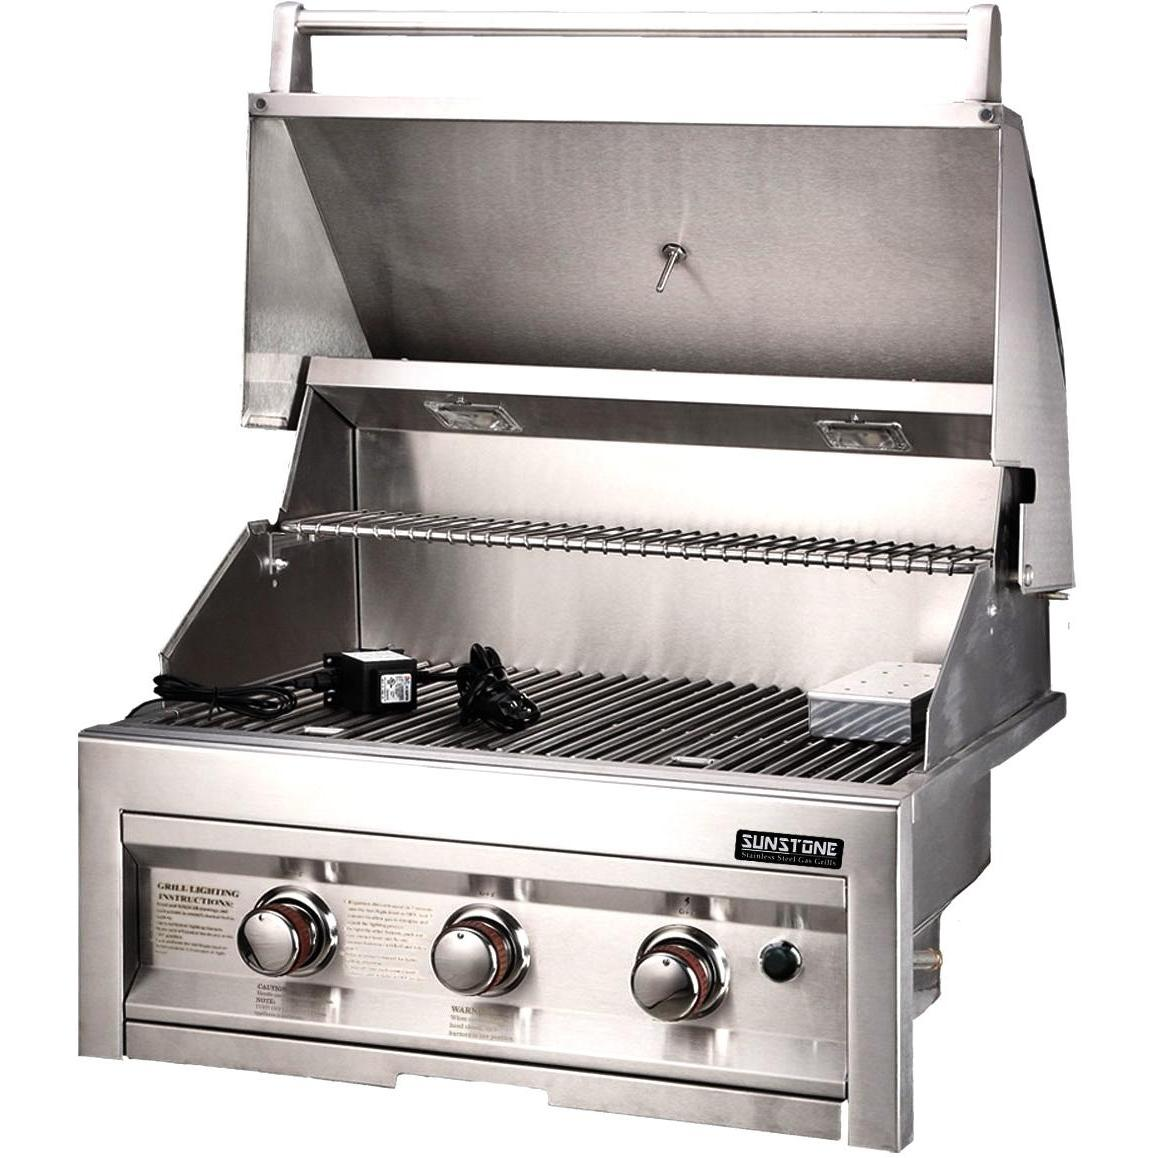 sales for sunstone grills 28 inch 3 burner natural gas grill prices price llhowrll. Black Bedroom Furniture Sets. Home Design Ideas